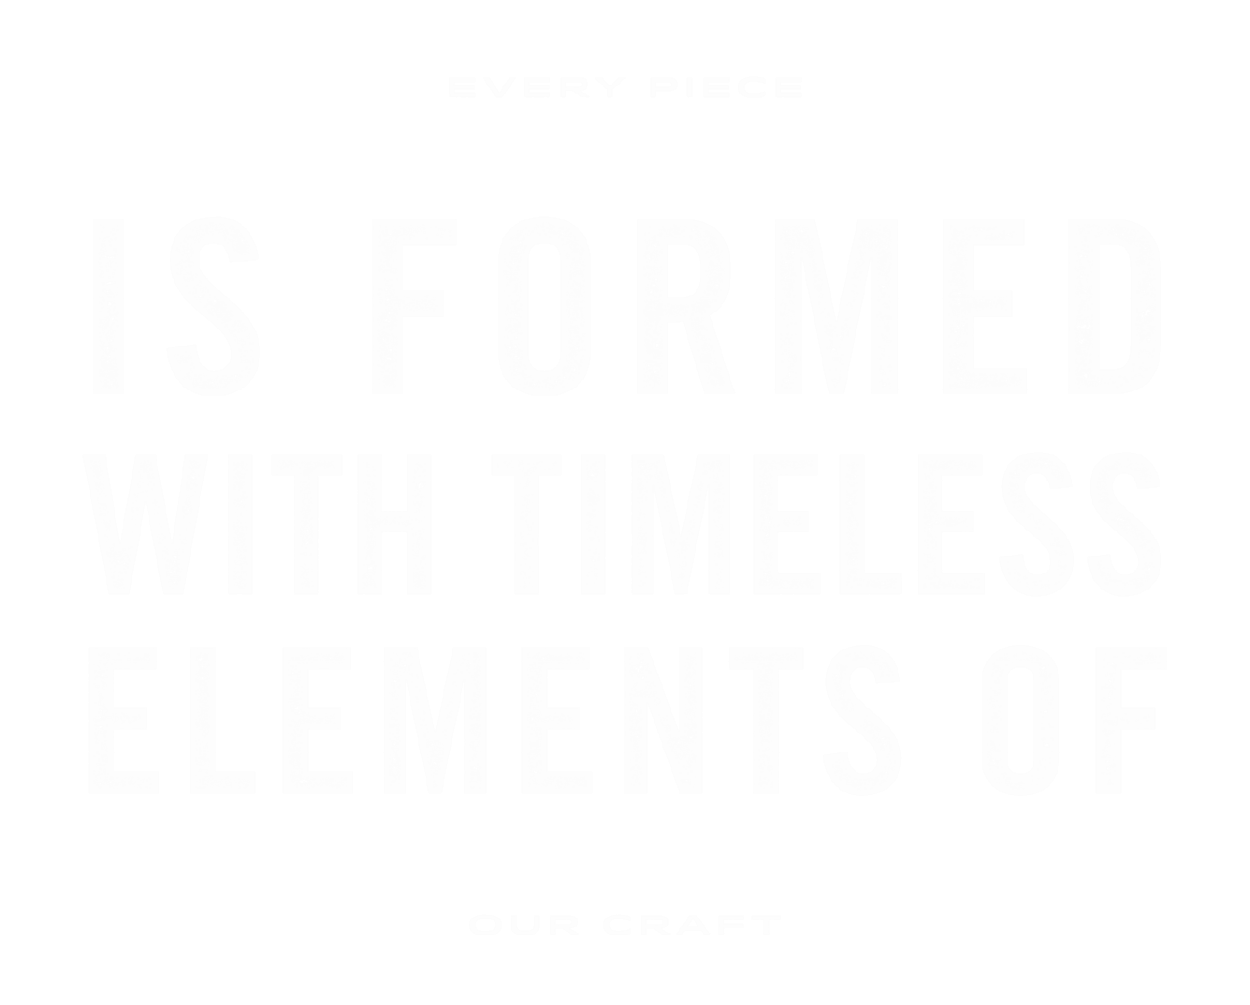 Every piece is formed with elements of our craft